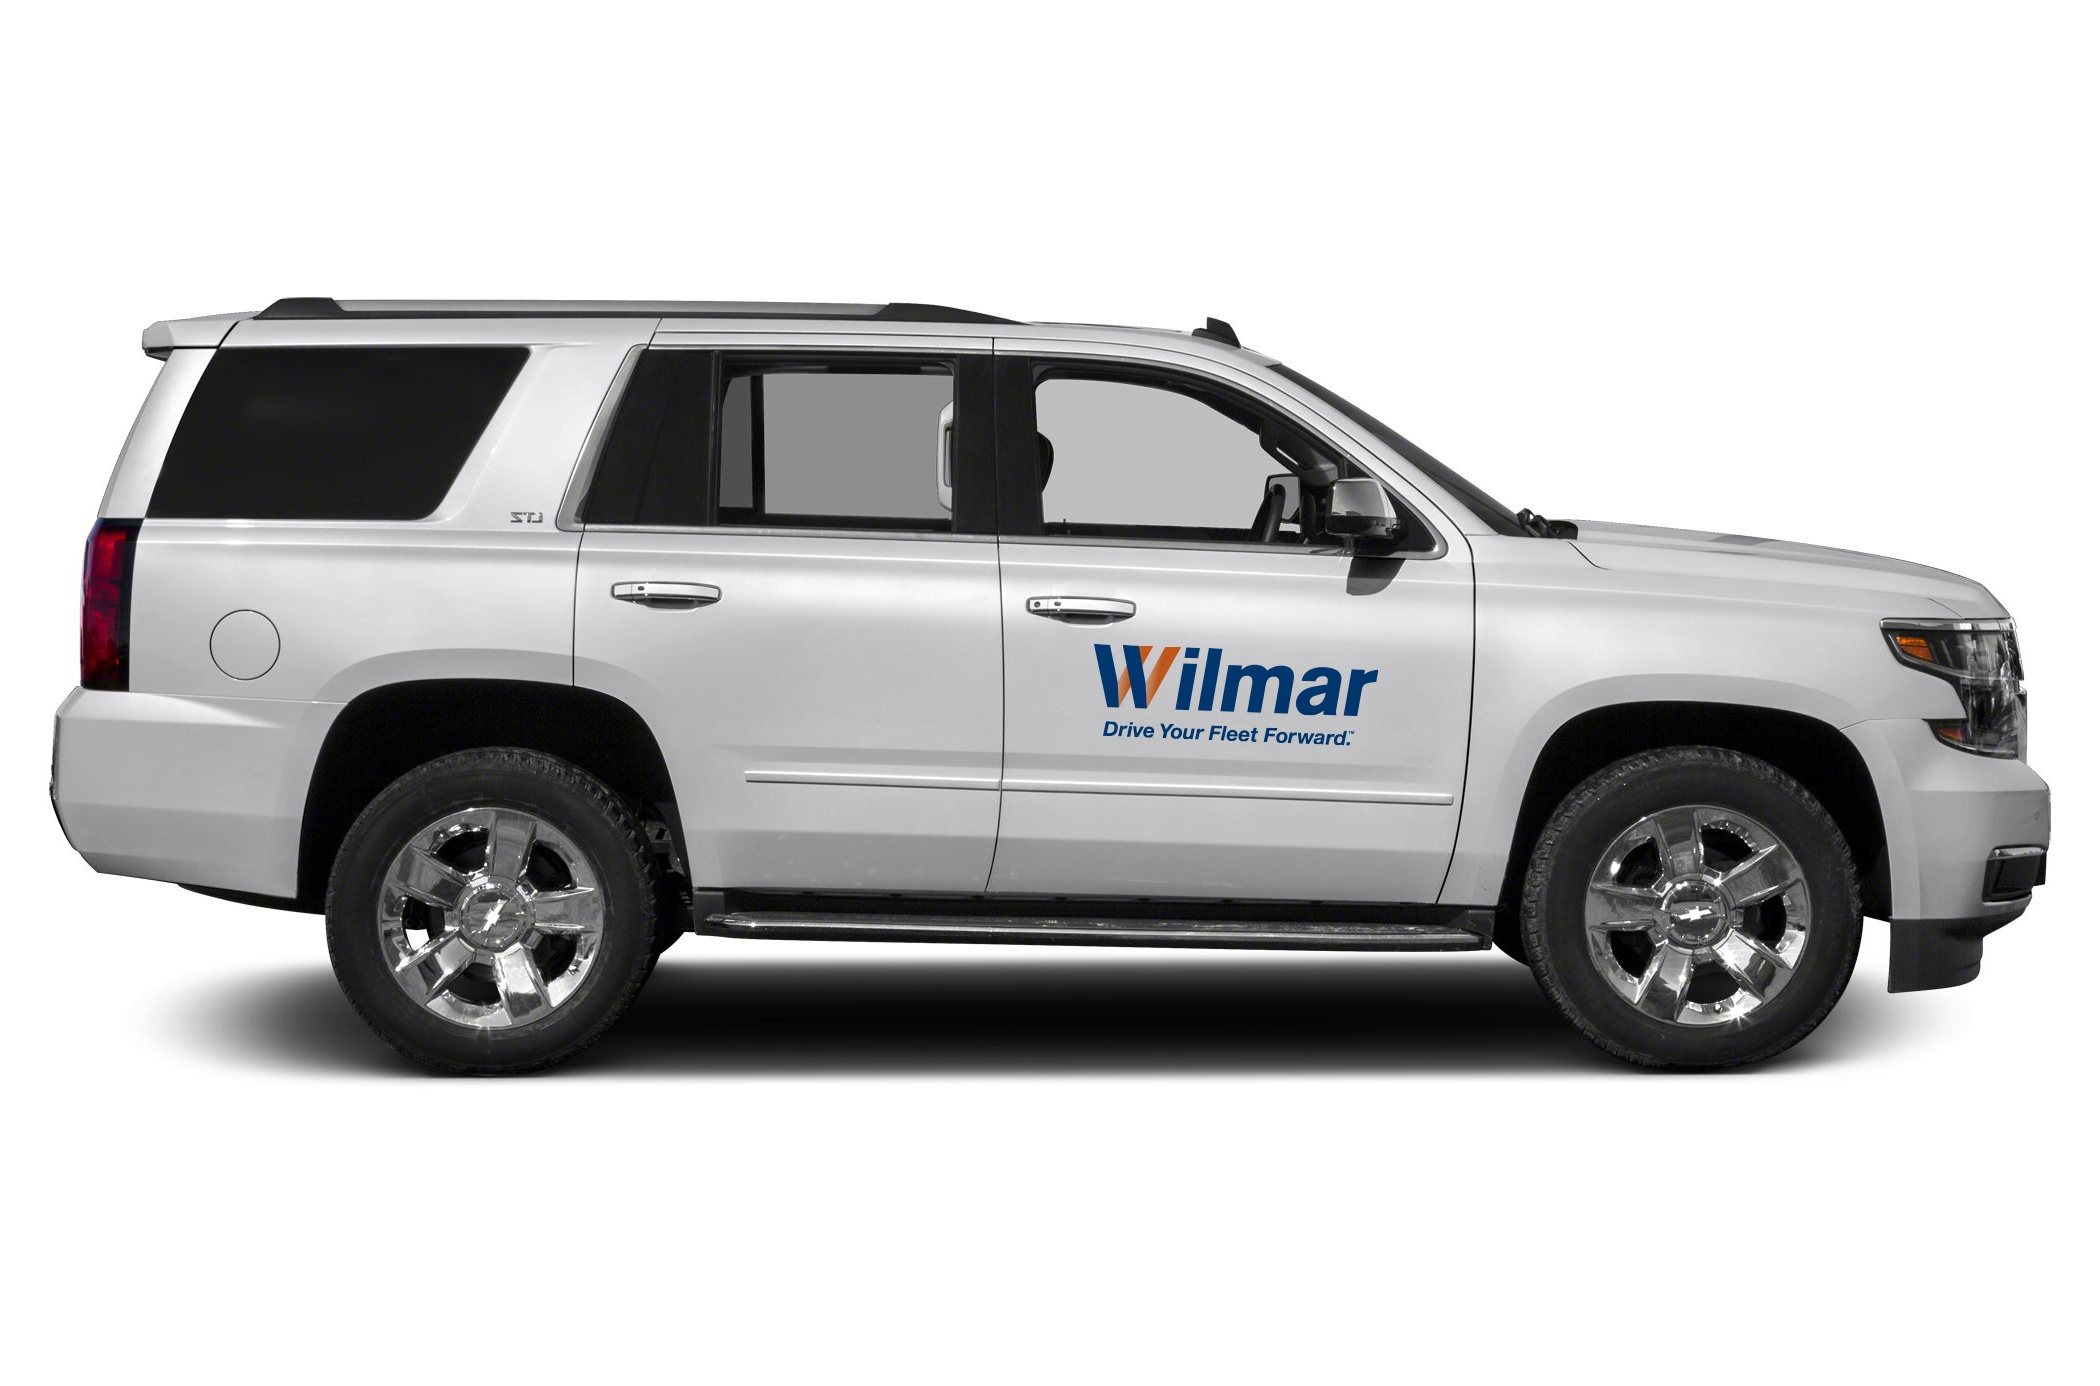 off lease vehicles